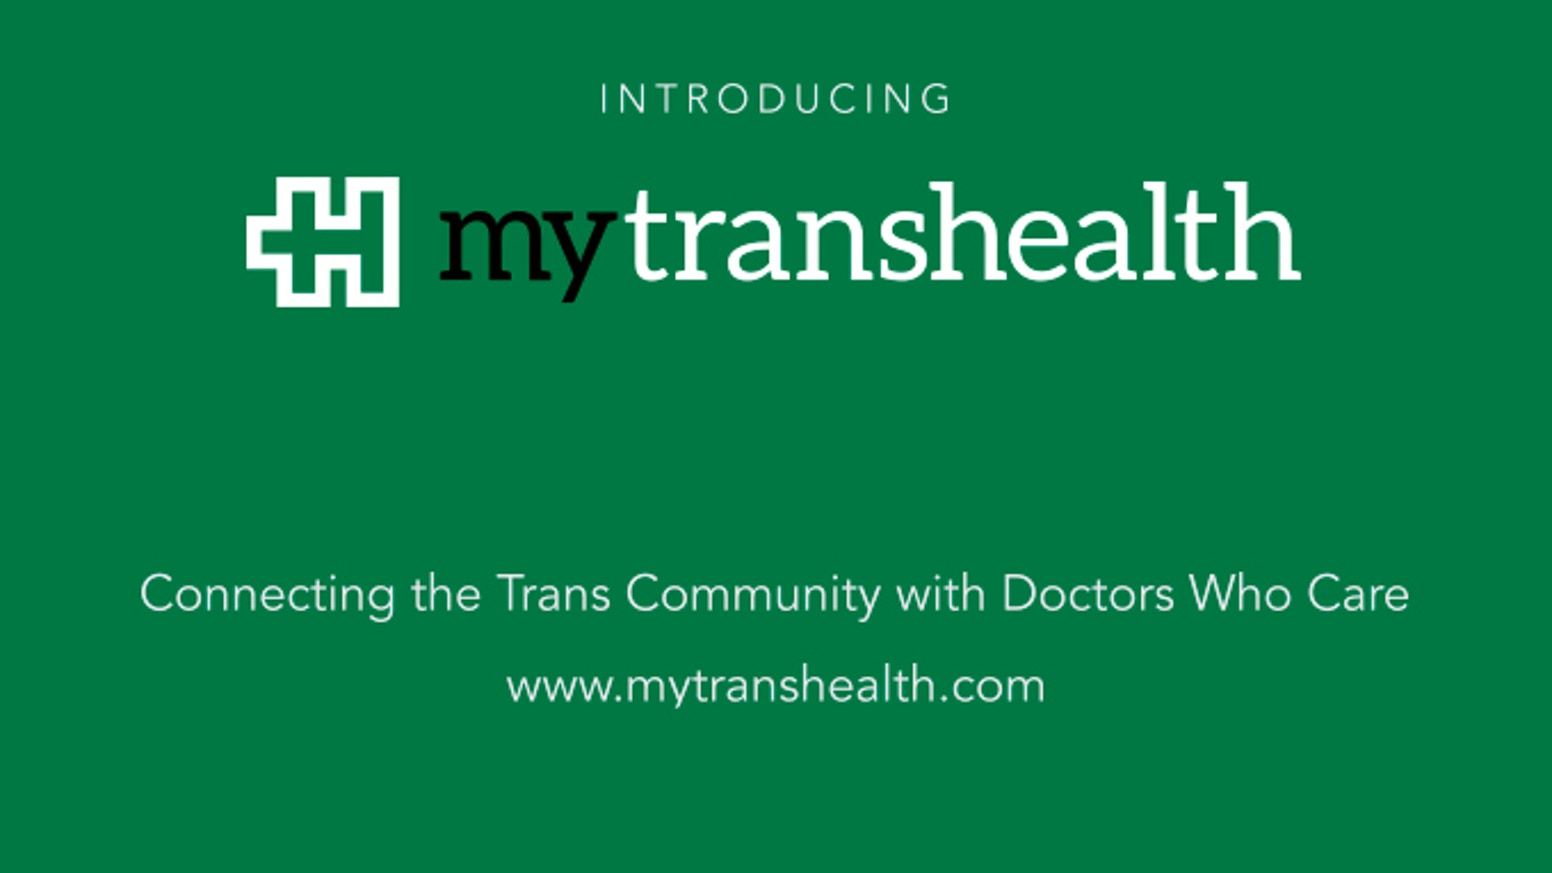 MyTransHealth is a FREE website that connects the transgender community with quality healthcare providers.